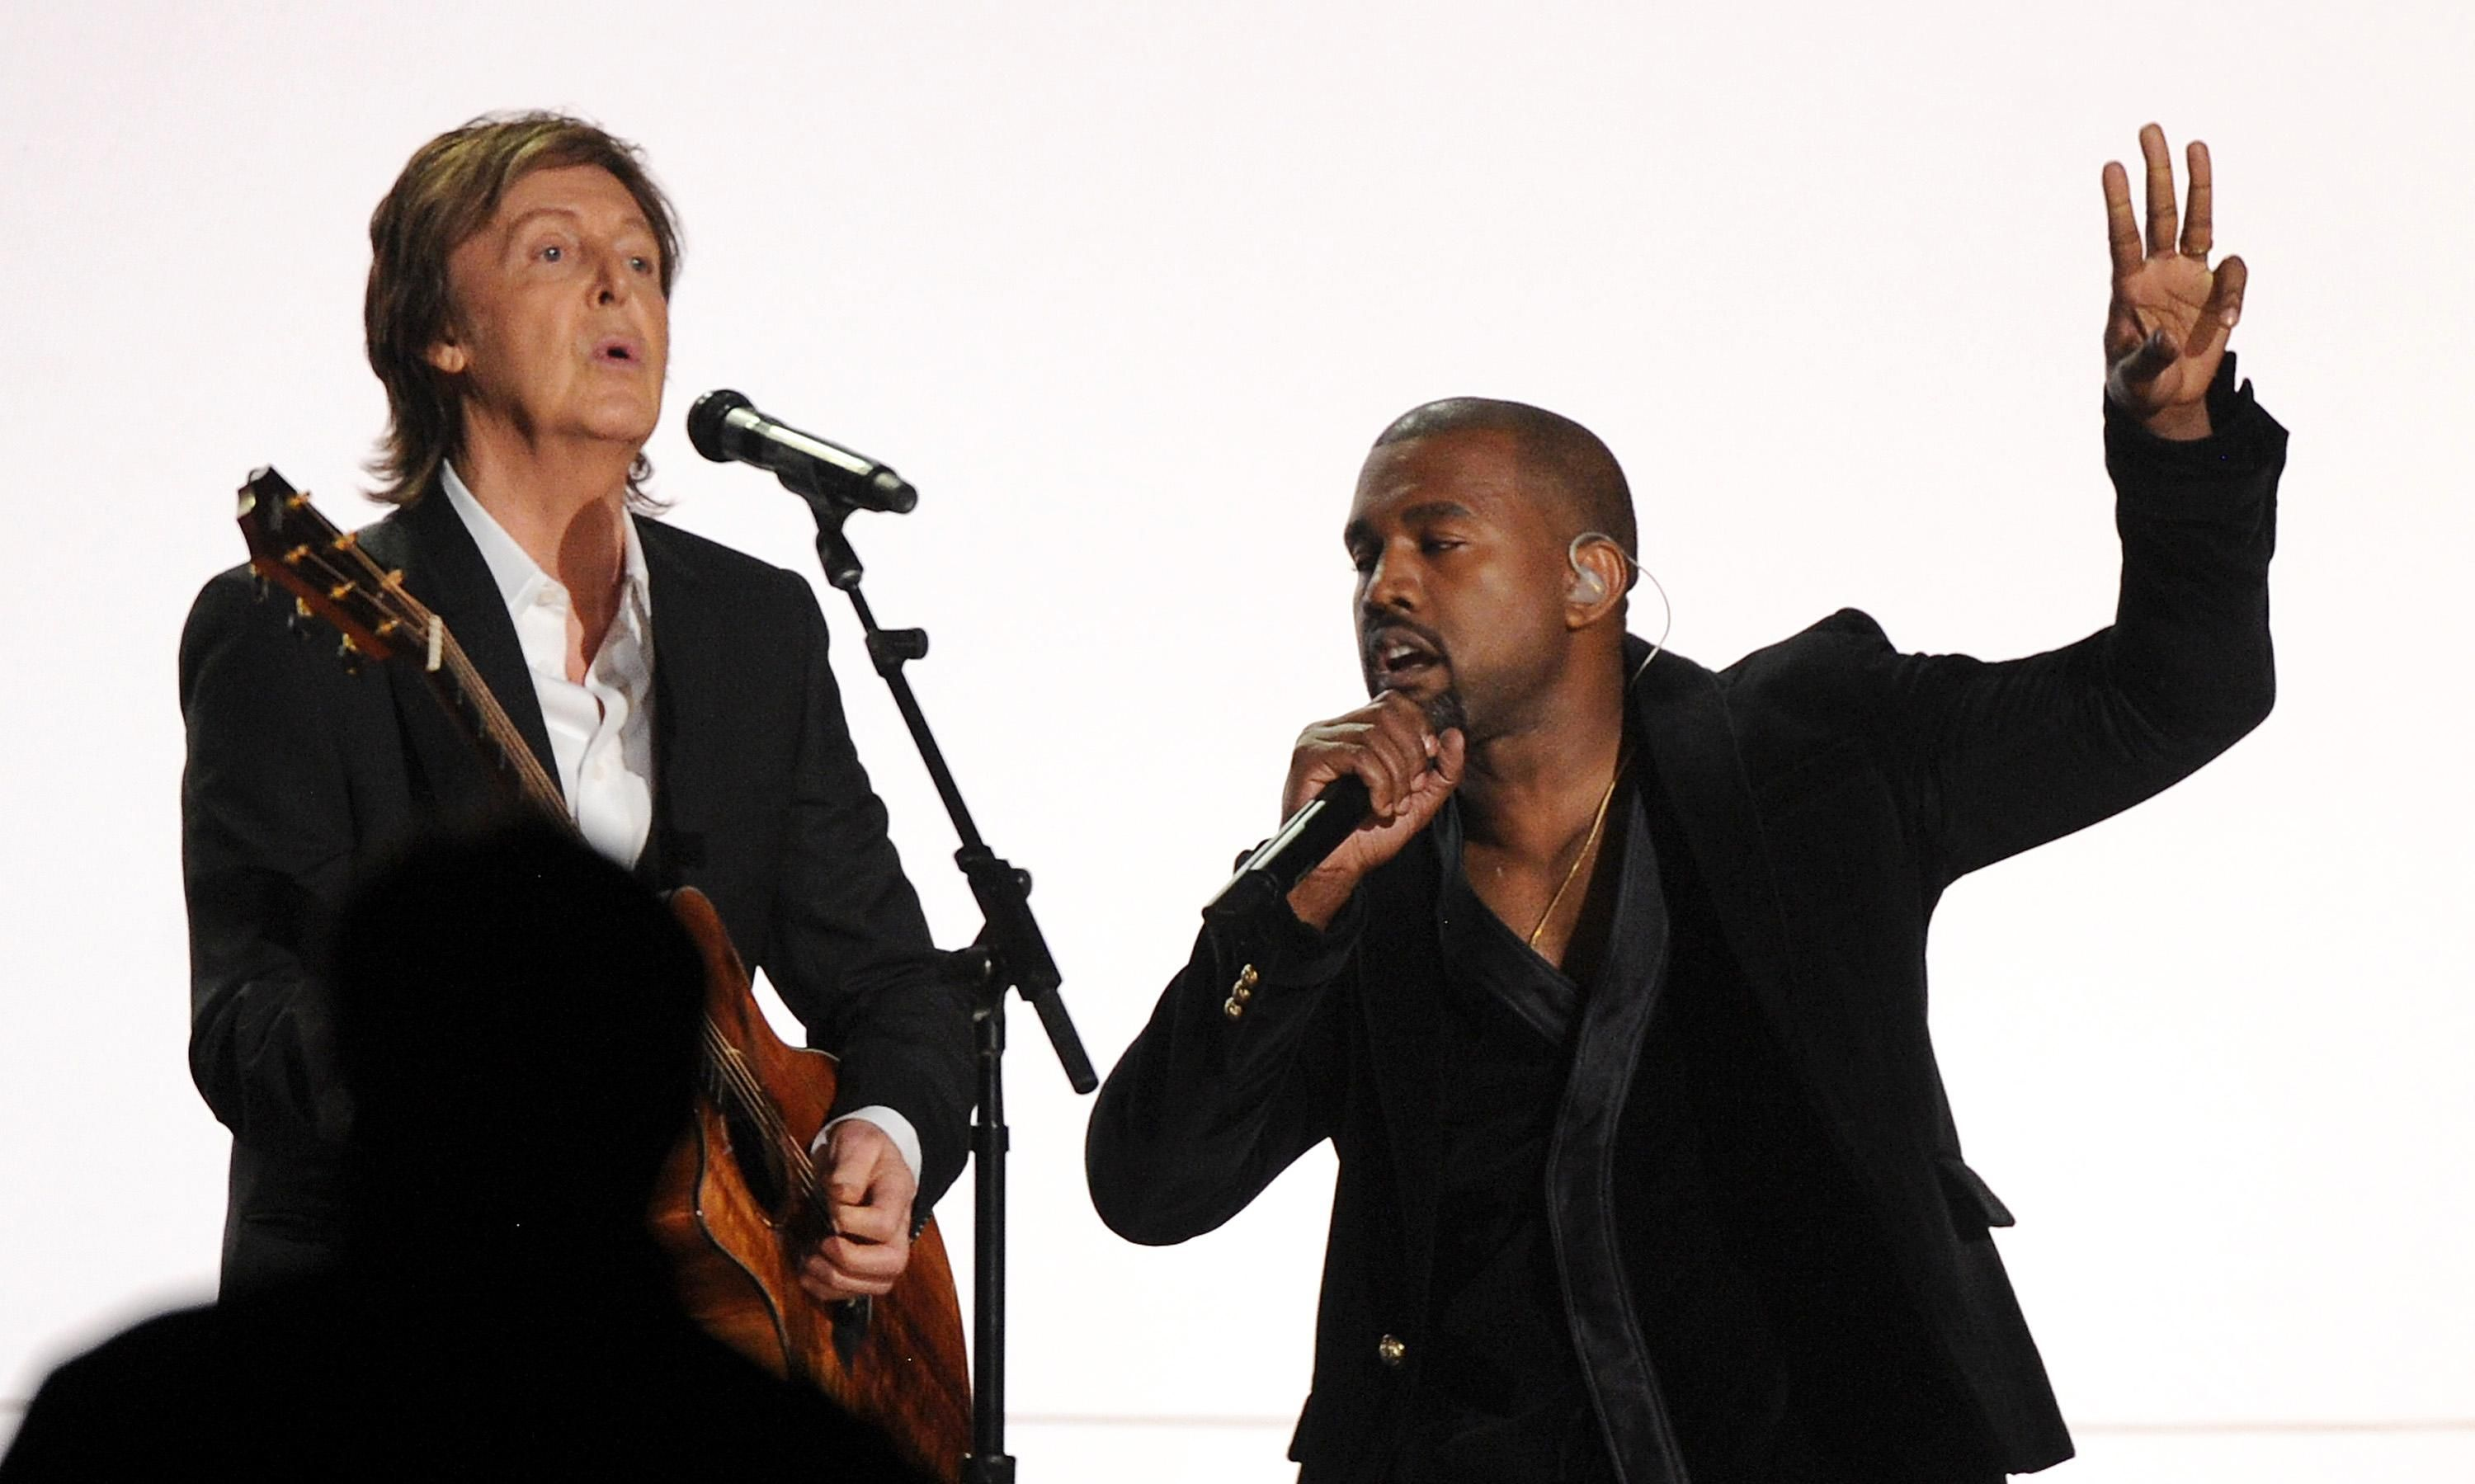 Kanye Wests use of N-word in song is justified, says Paul McCartney - http://tubepilot.pw/fanzone/kanye-wests-use-of-n-word-in-song-is-justified-says-paul-mccartney/  Bloging for business ===>>> http://allsuper.info/